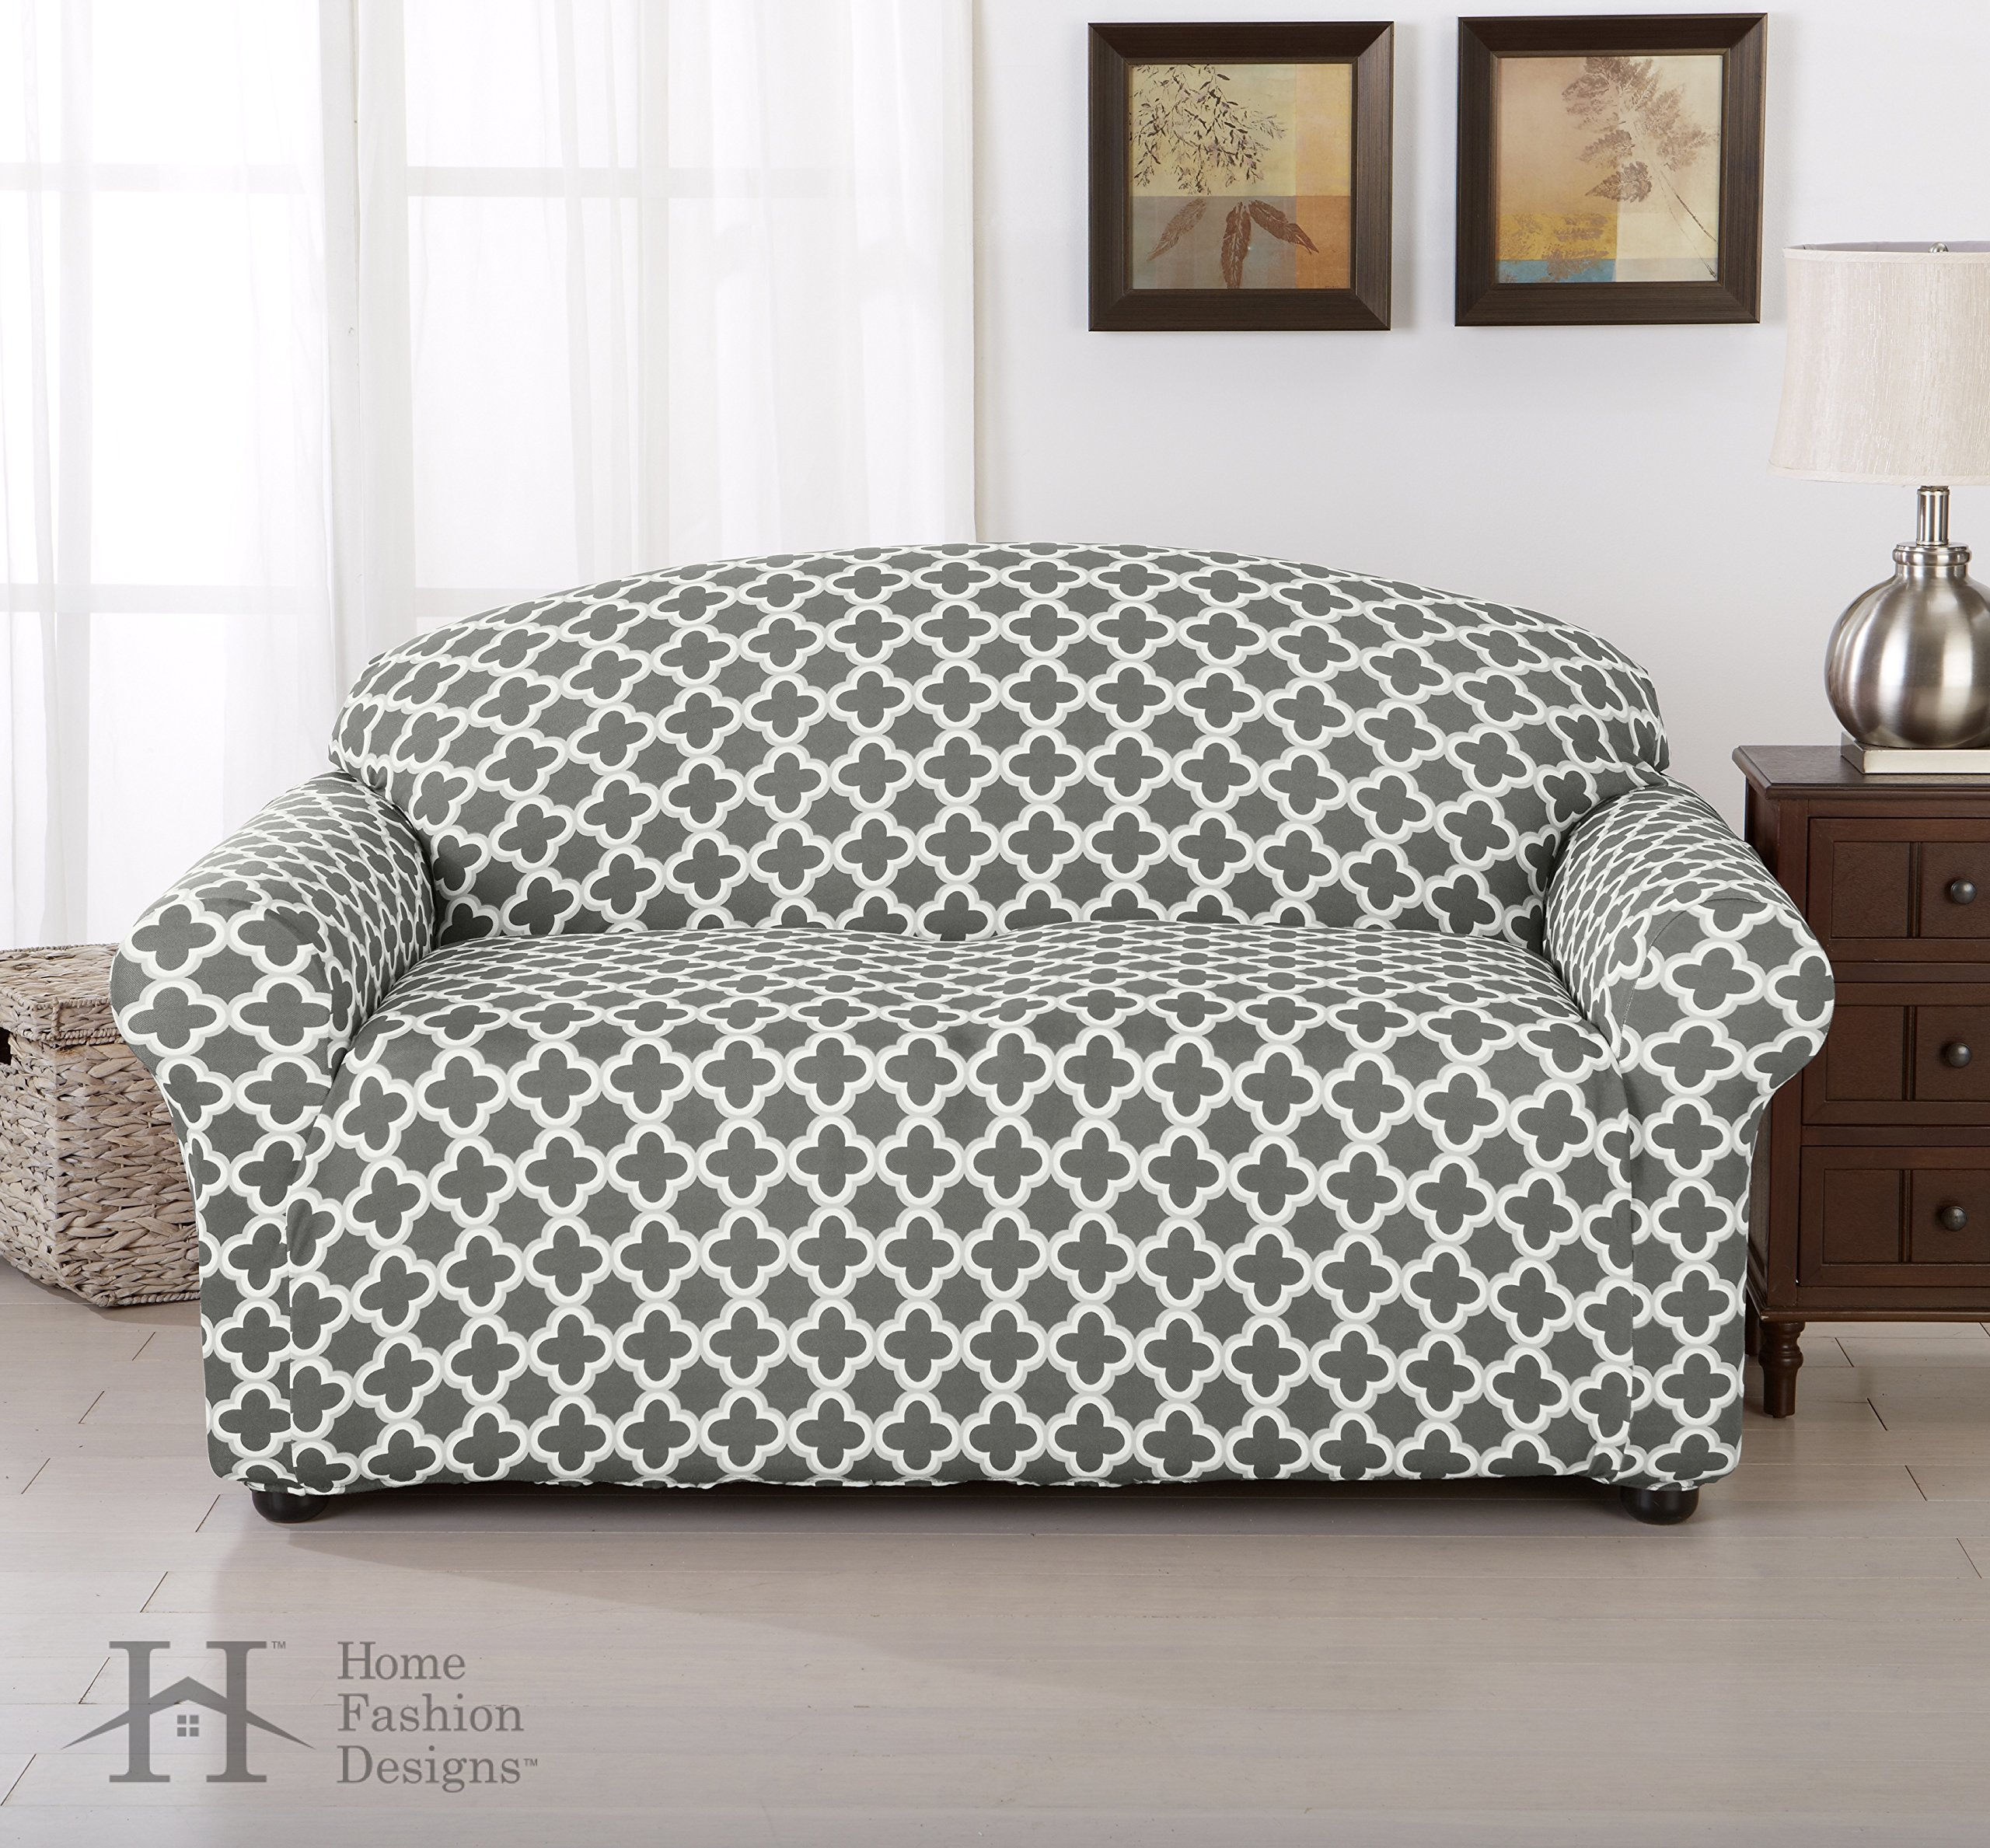 Home Fashion Designs Form Fit, Slip Resistant, Stylish Furniture Cover/Protector Featuring Lightweight Stretch Twill Fabric. Brenna Collection Basic Strapless Slipcover. By (Loveseat, Charcoal)